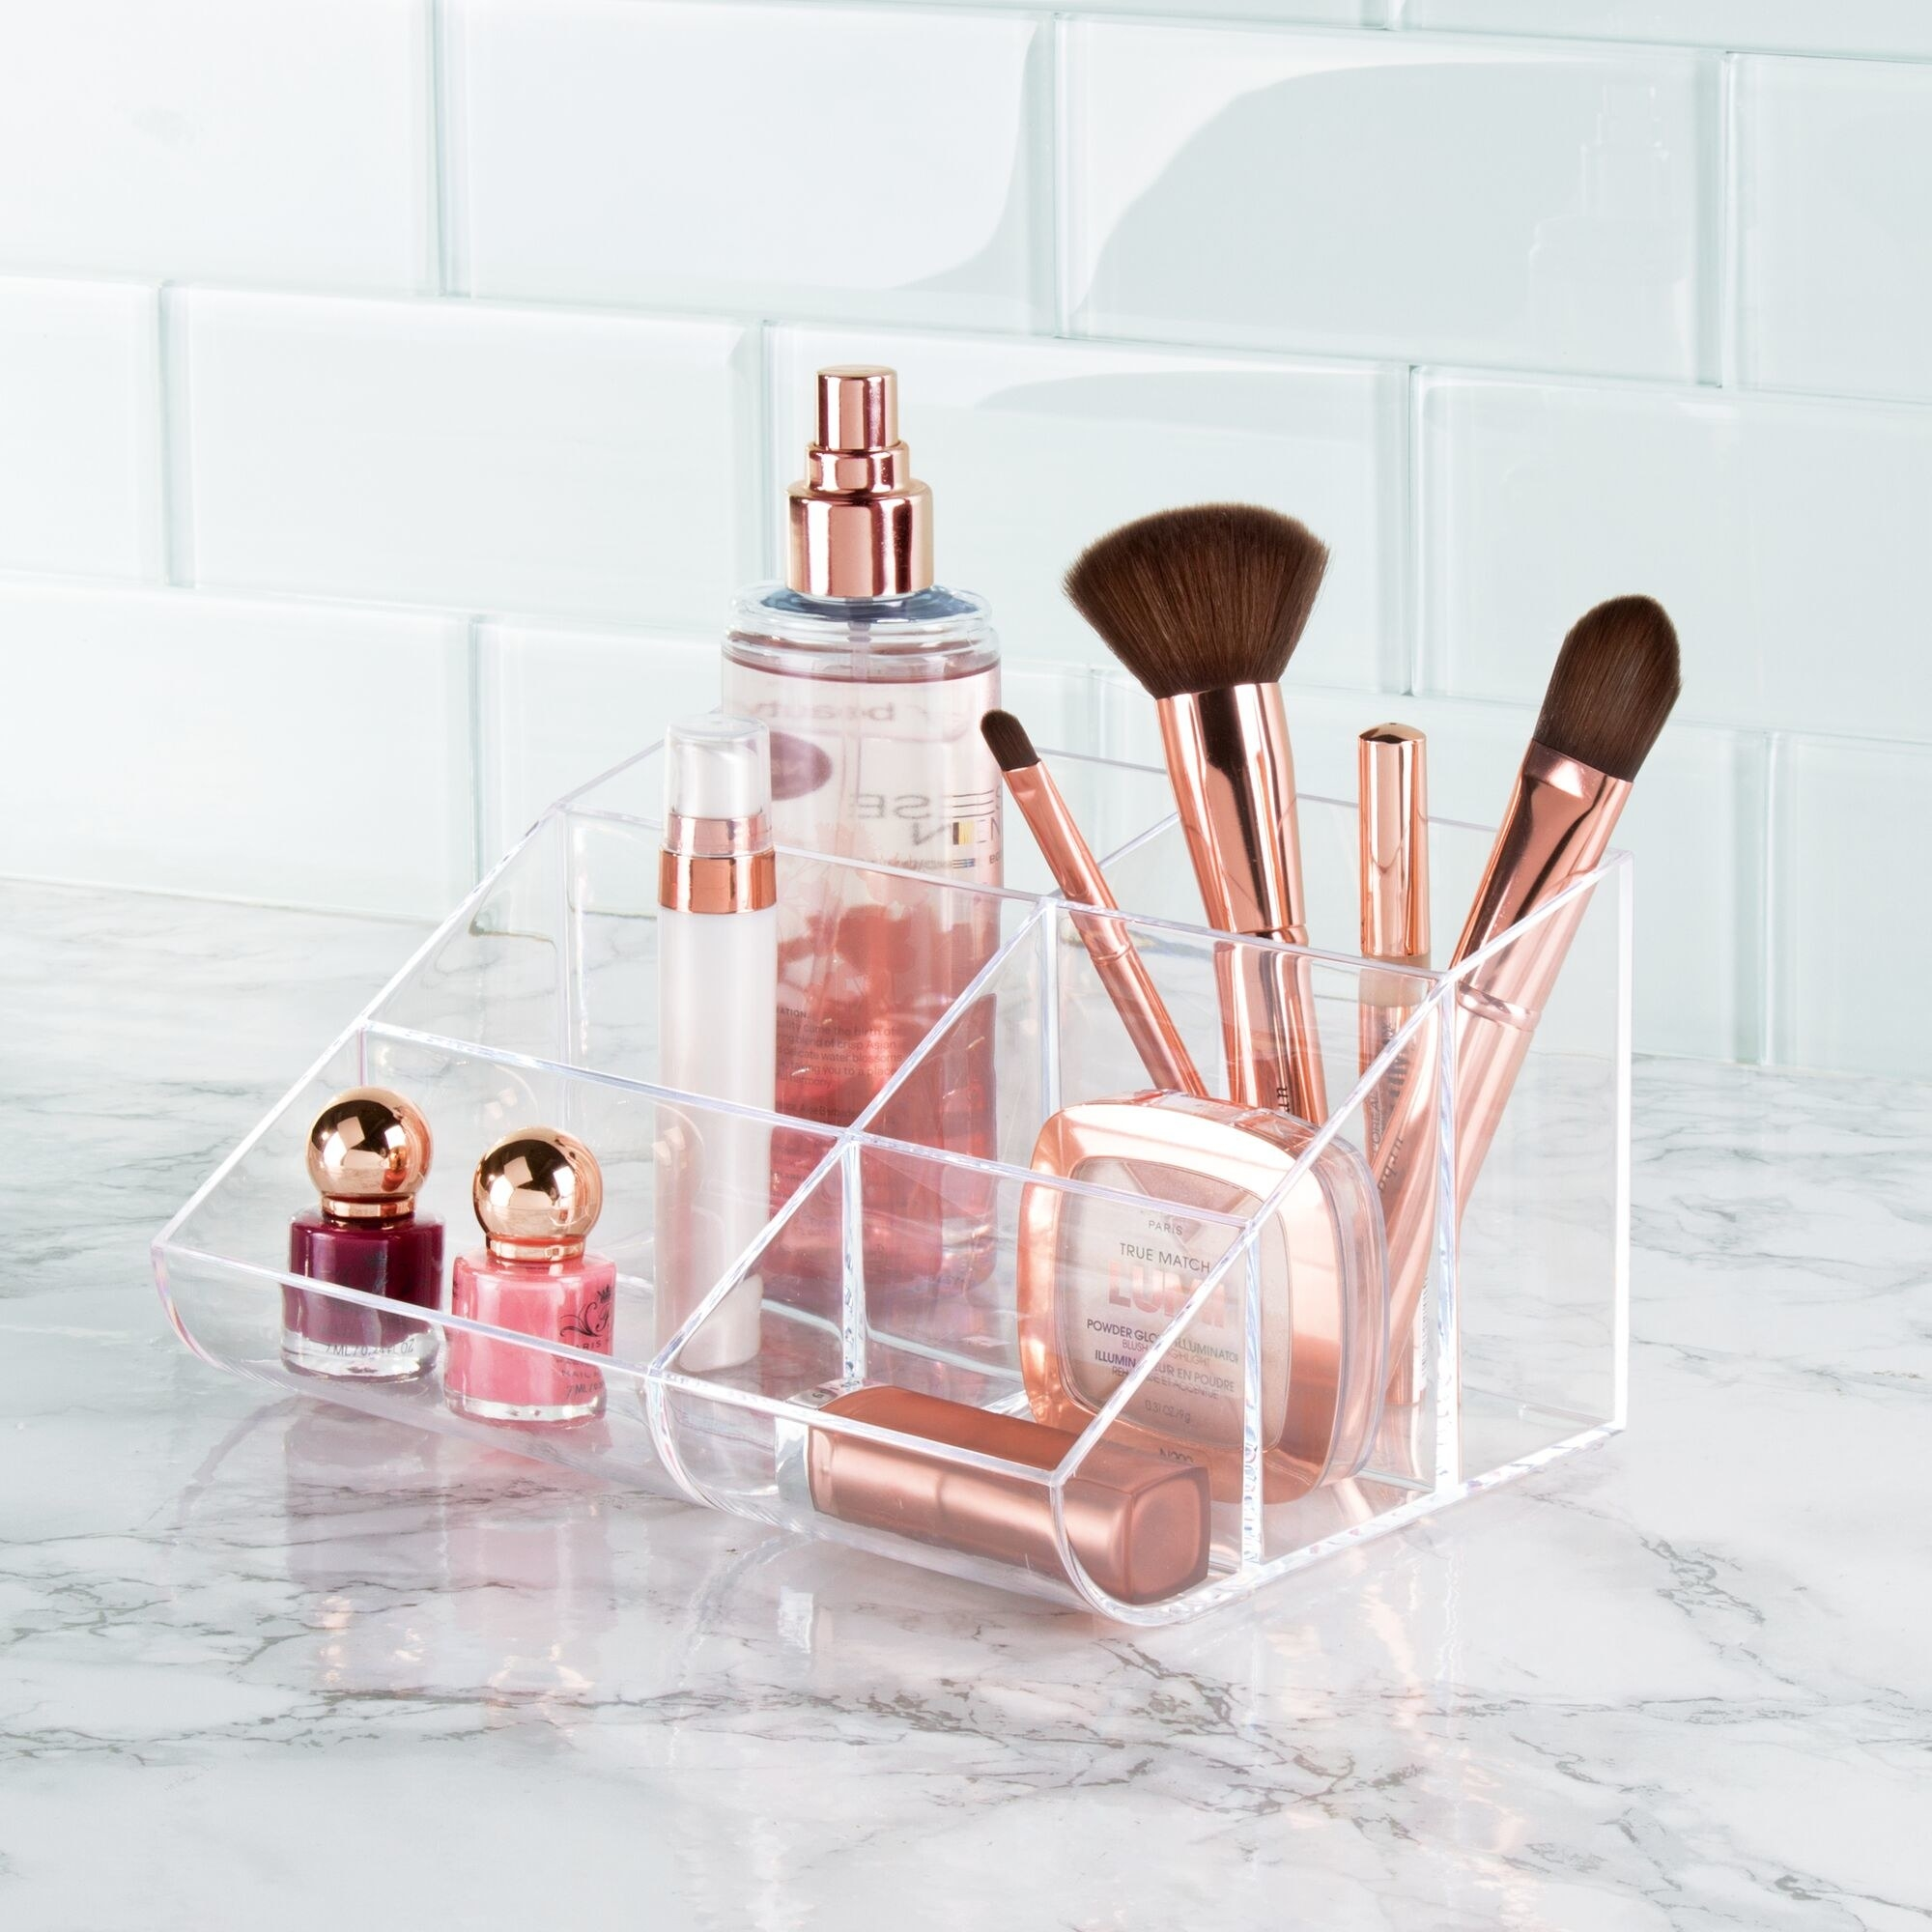 The cosmetics organizer filled with lipsticks, sprays, and makeup brushes